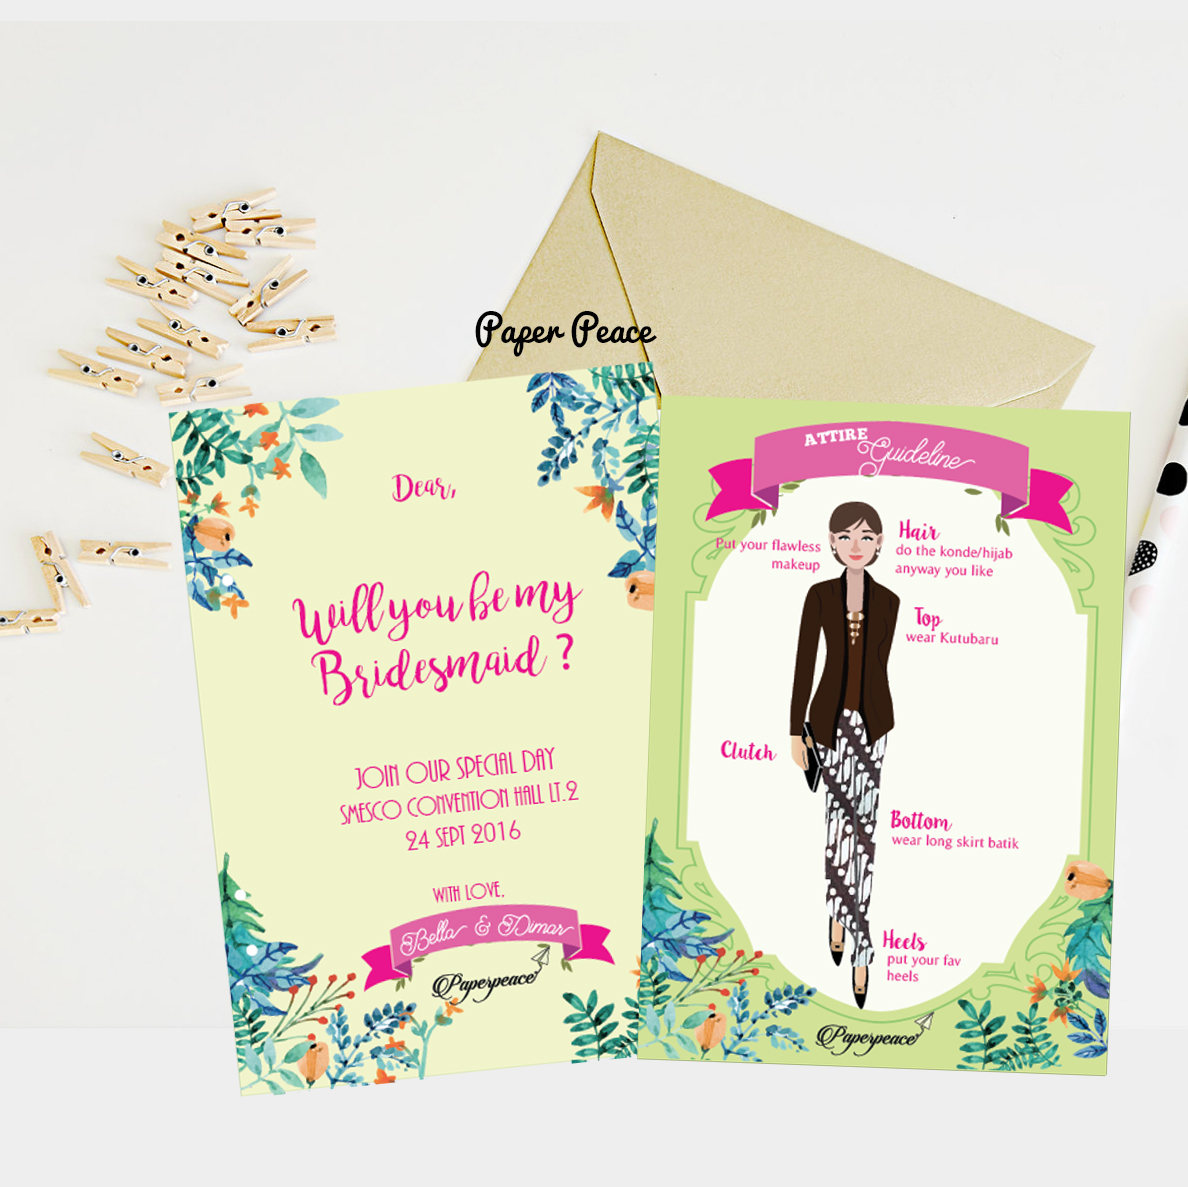 paperpeace: Bridesmaid Card & Attire Guide for Ms. Bella's